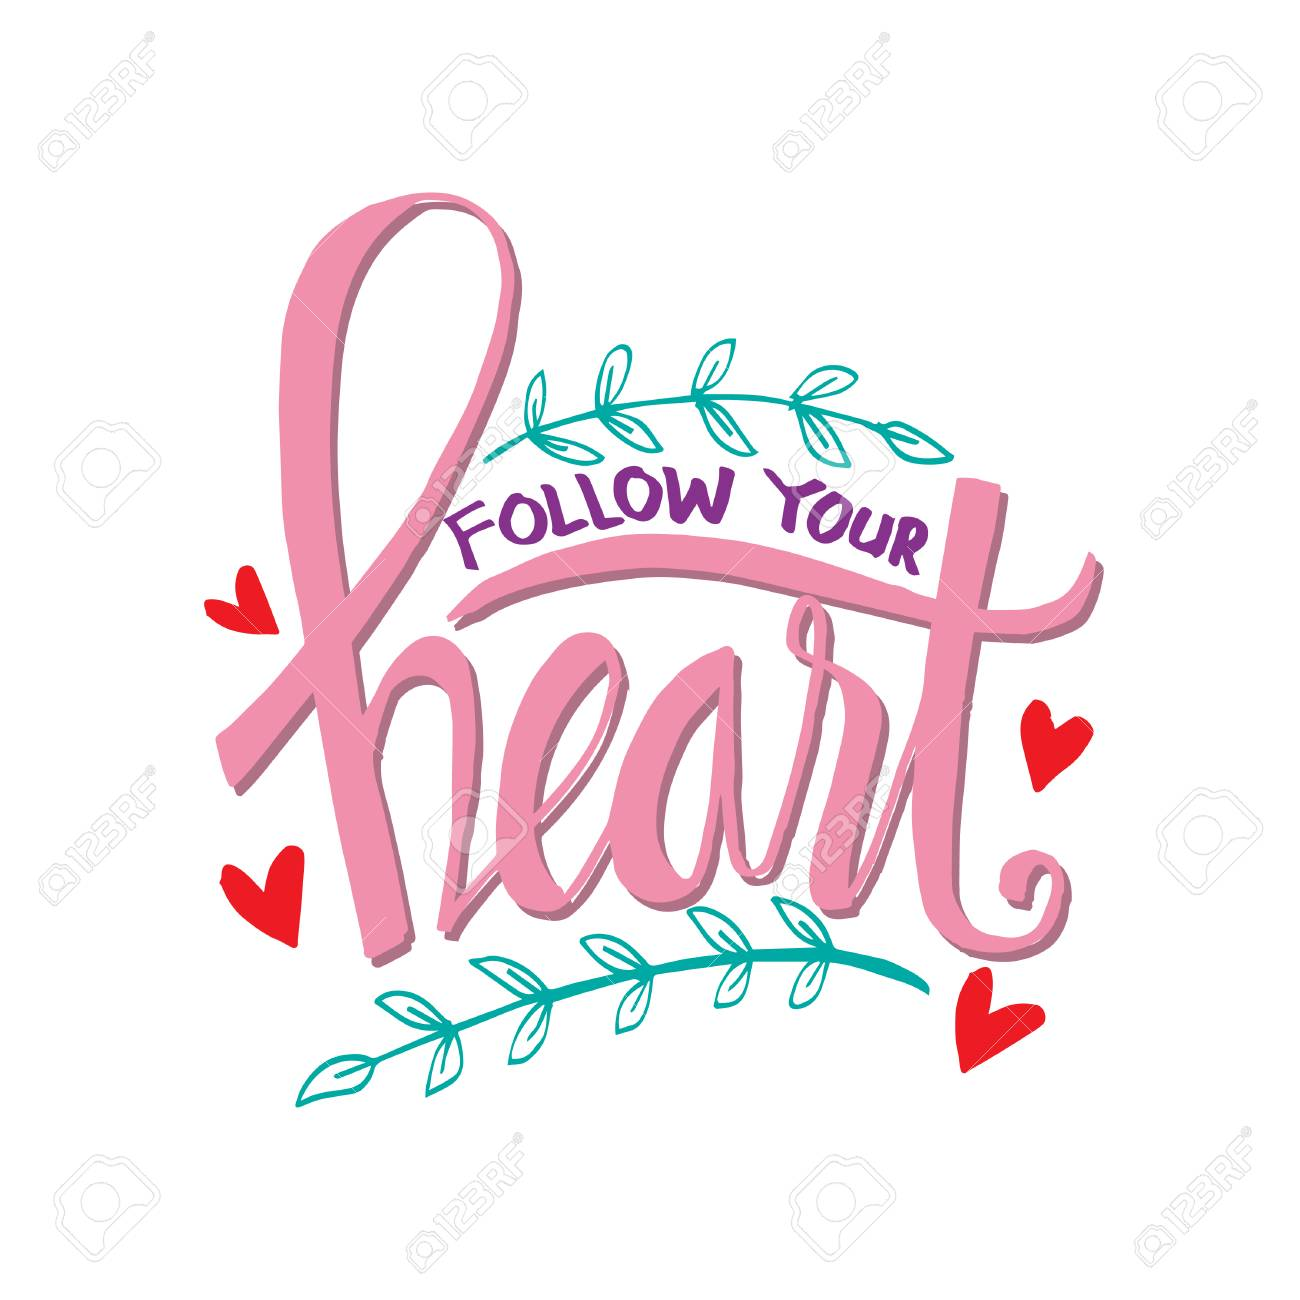 Follow Your Heart Follow Your Heart Hand Lettering Motivational Quote